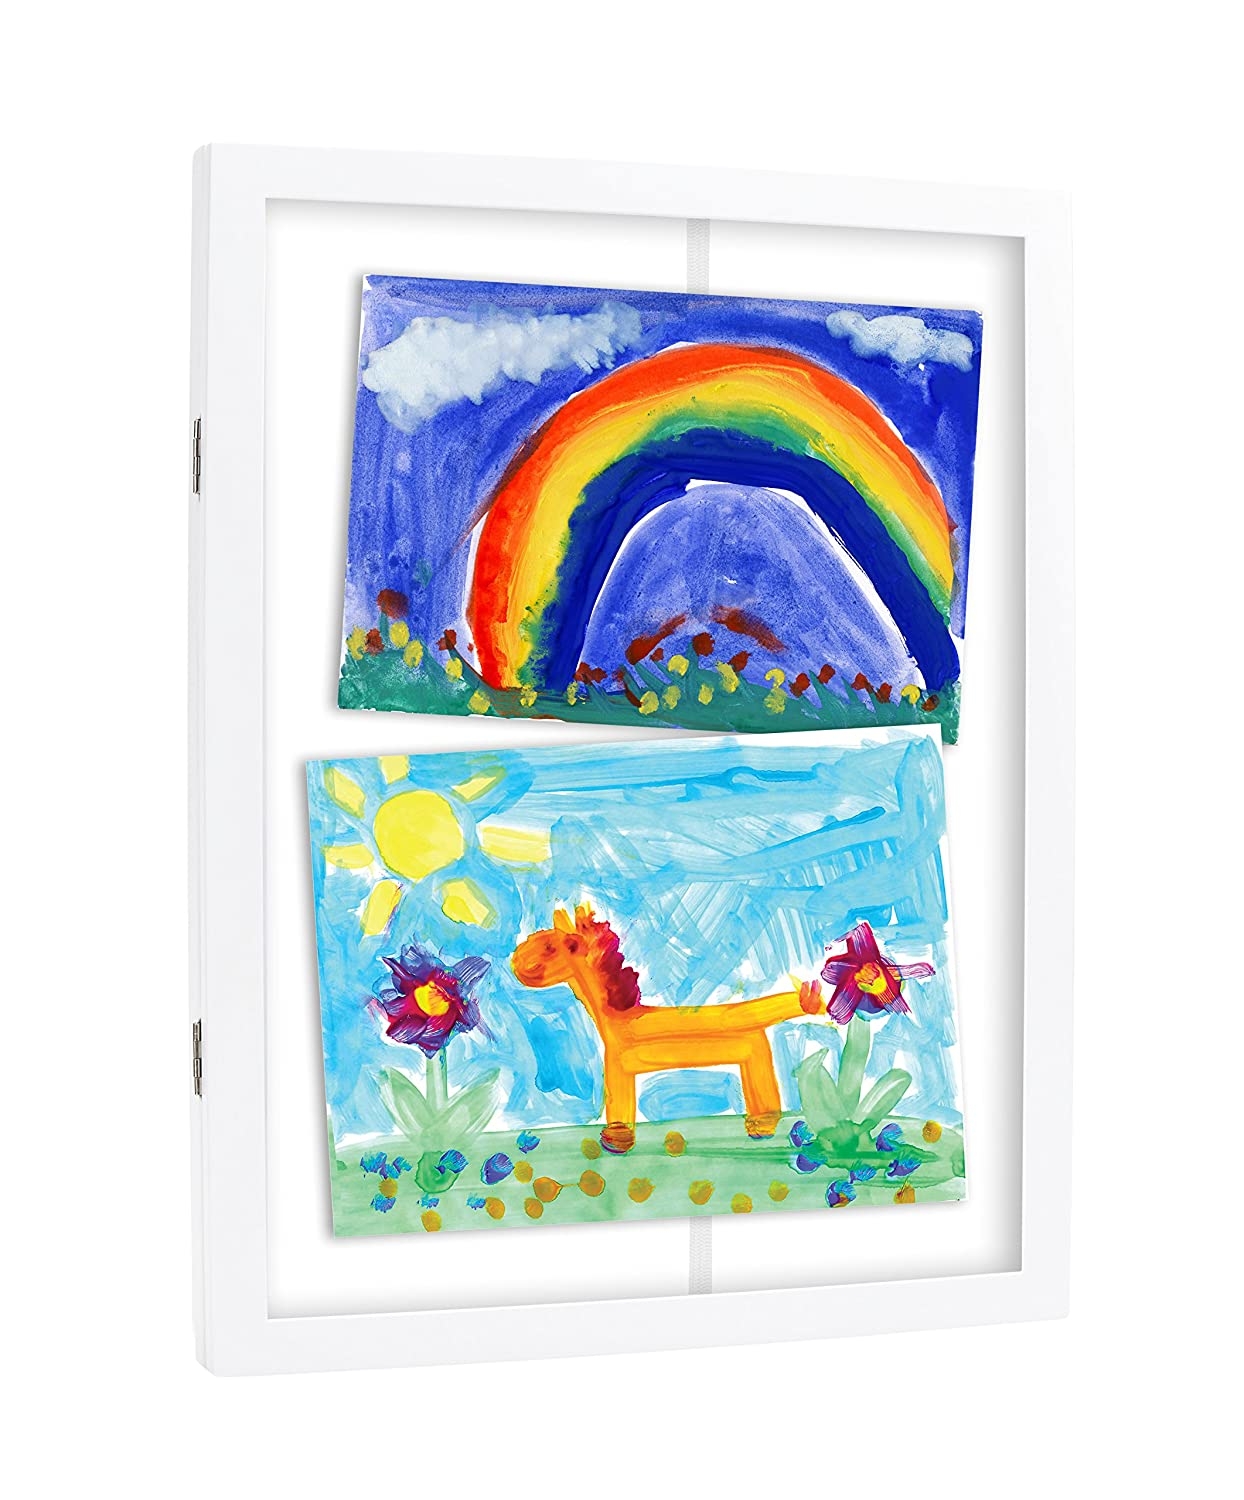 Amazon pearhead childrens artwork storage frame white baby jeuxipadfo Image collections